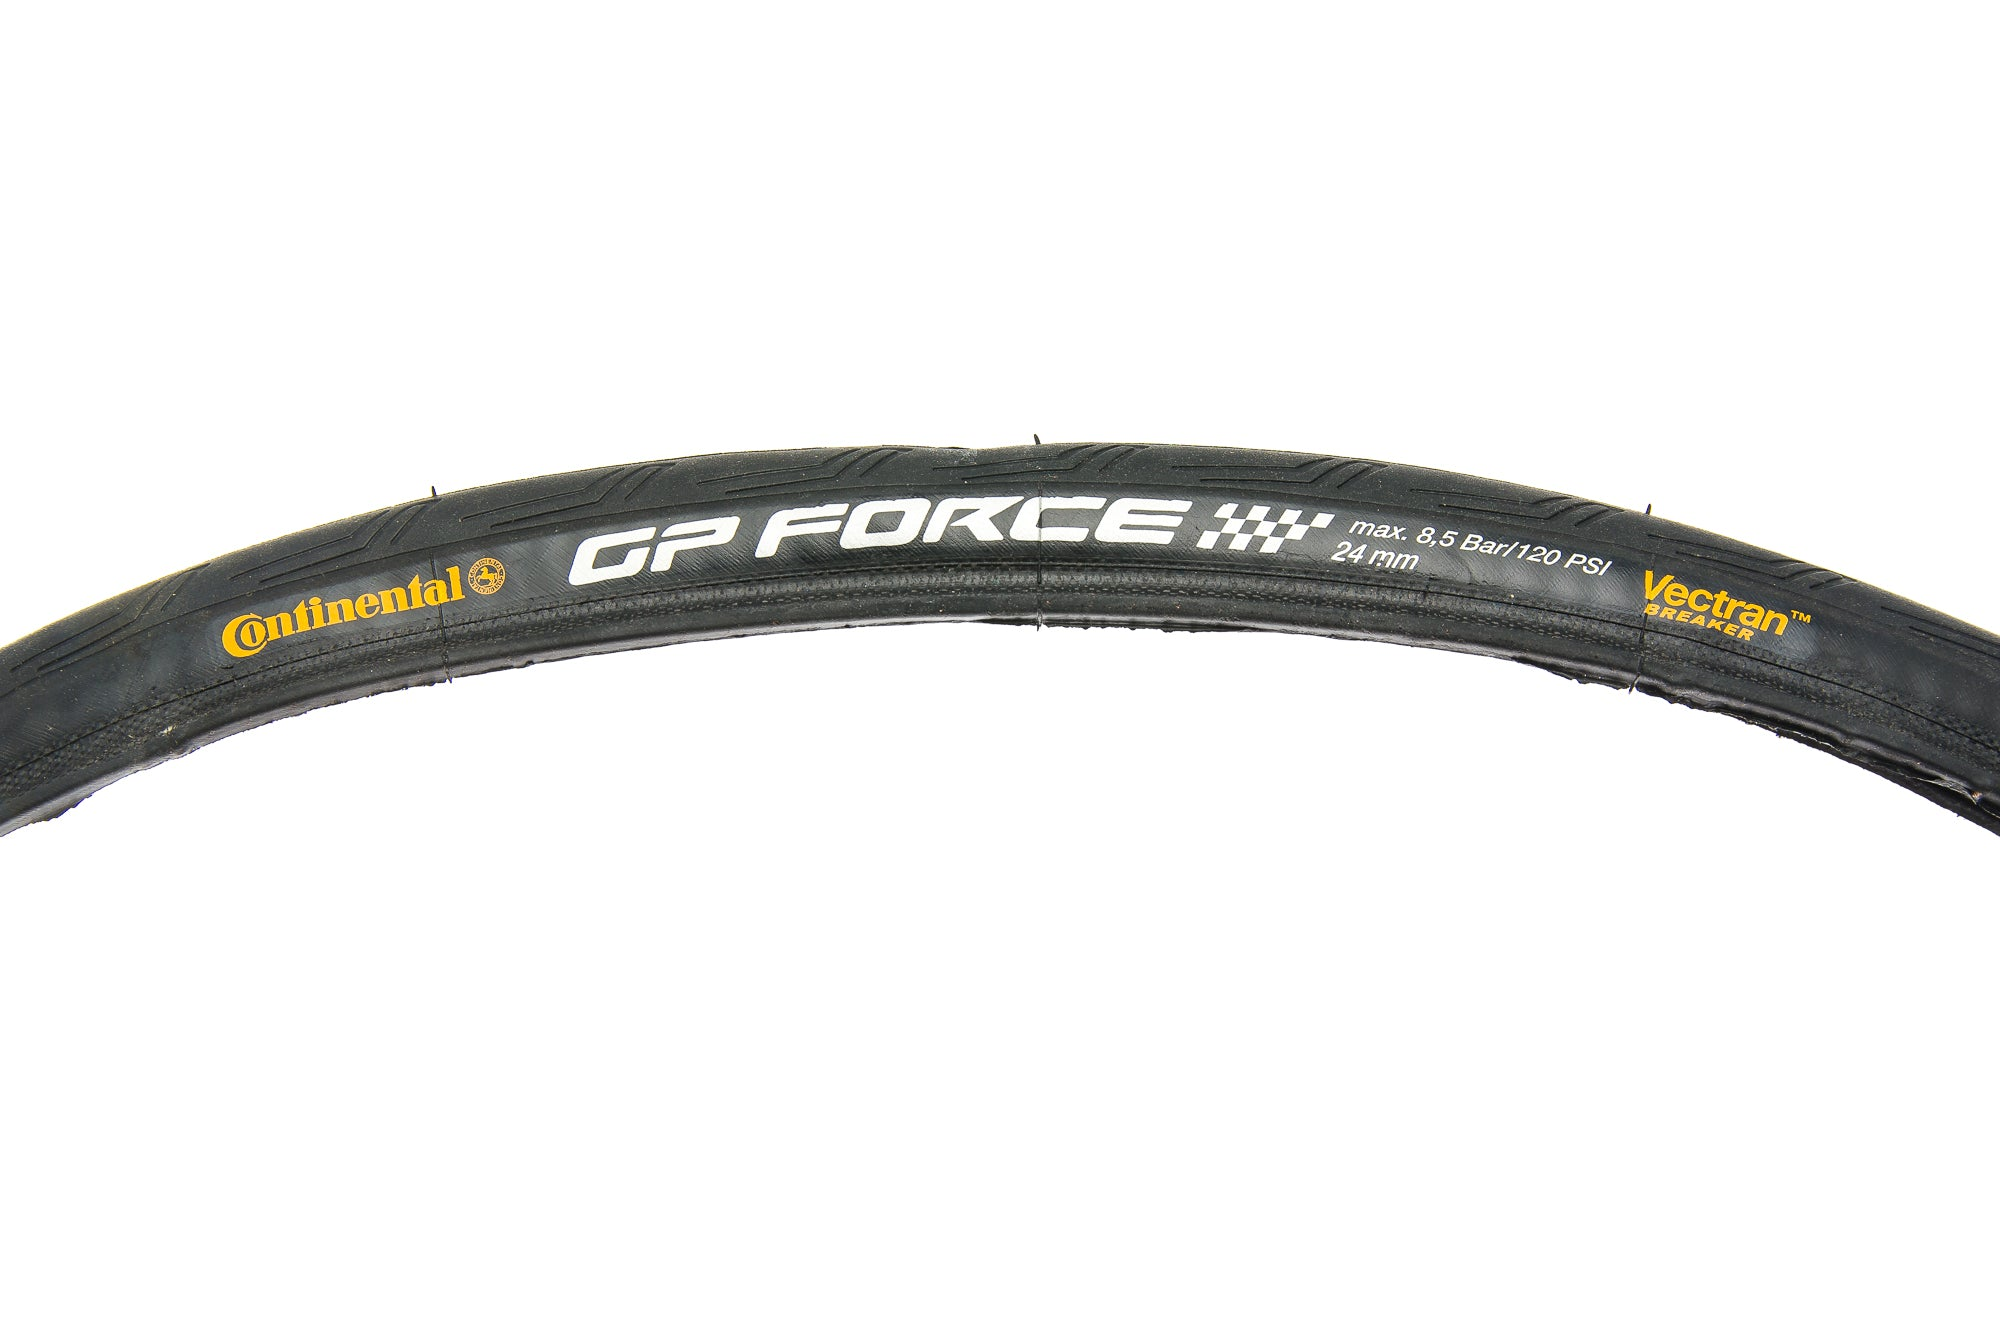 Continental GP Force Tire 700x24c 3/330 TPI Clincher